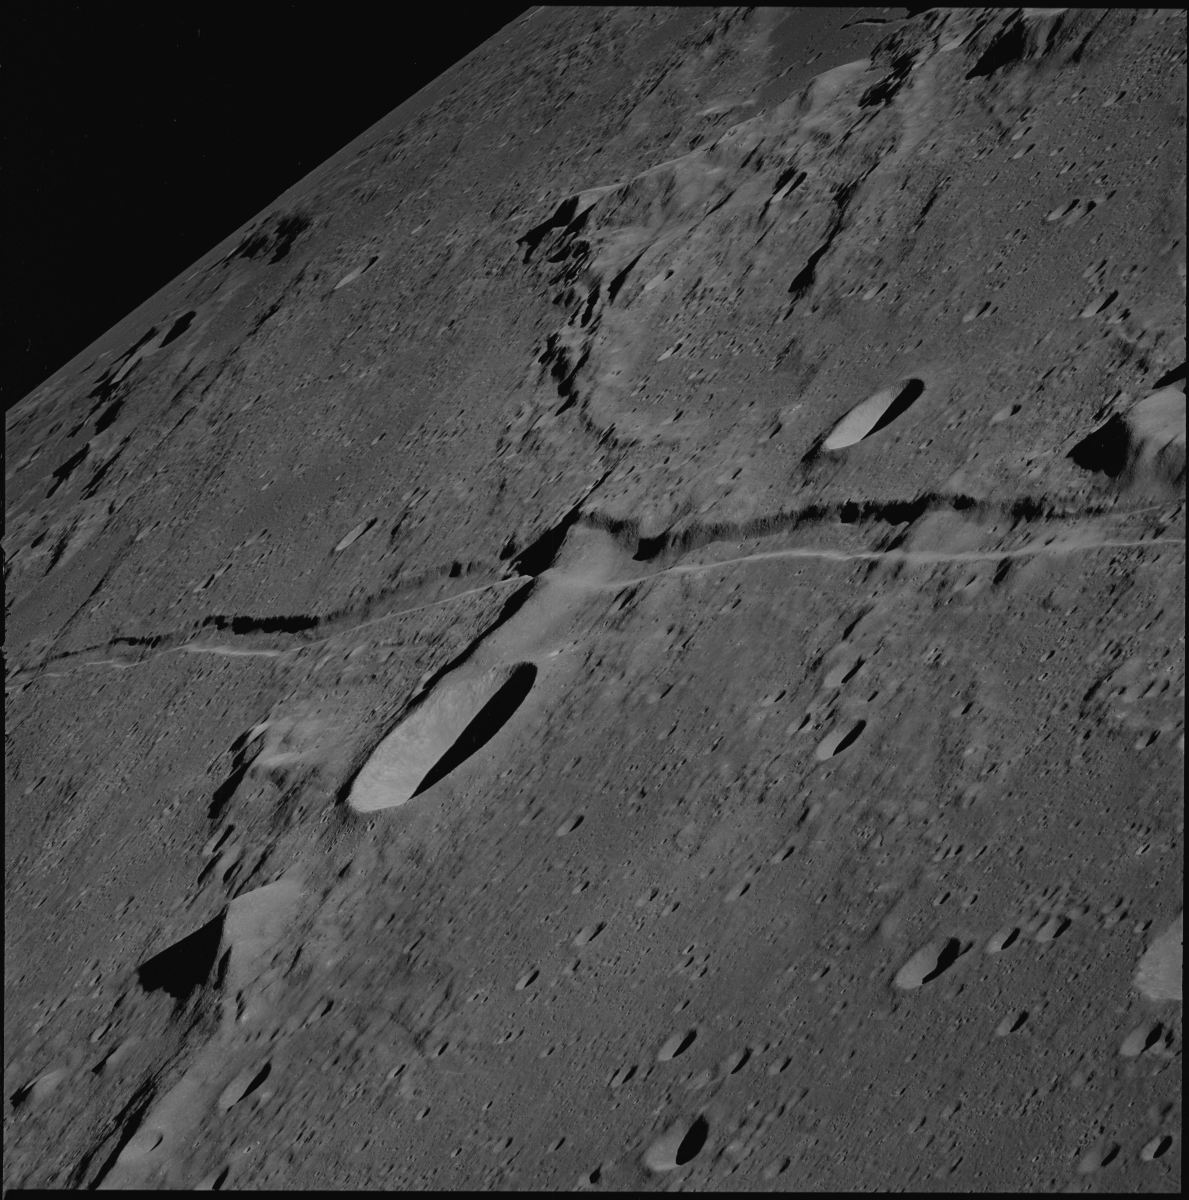 What made this strange trail across the moon.